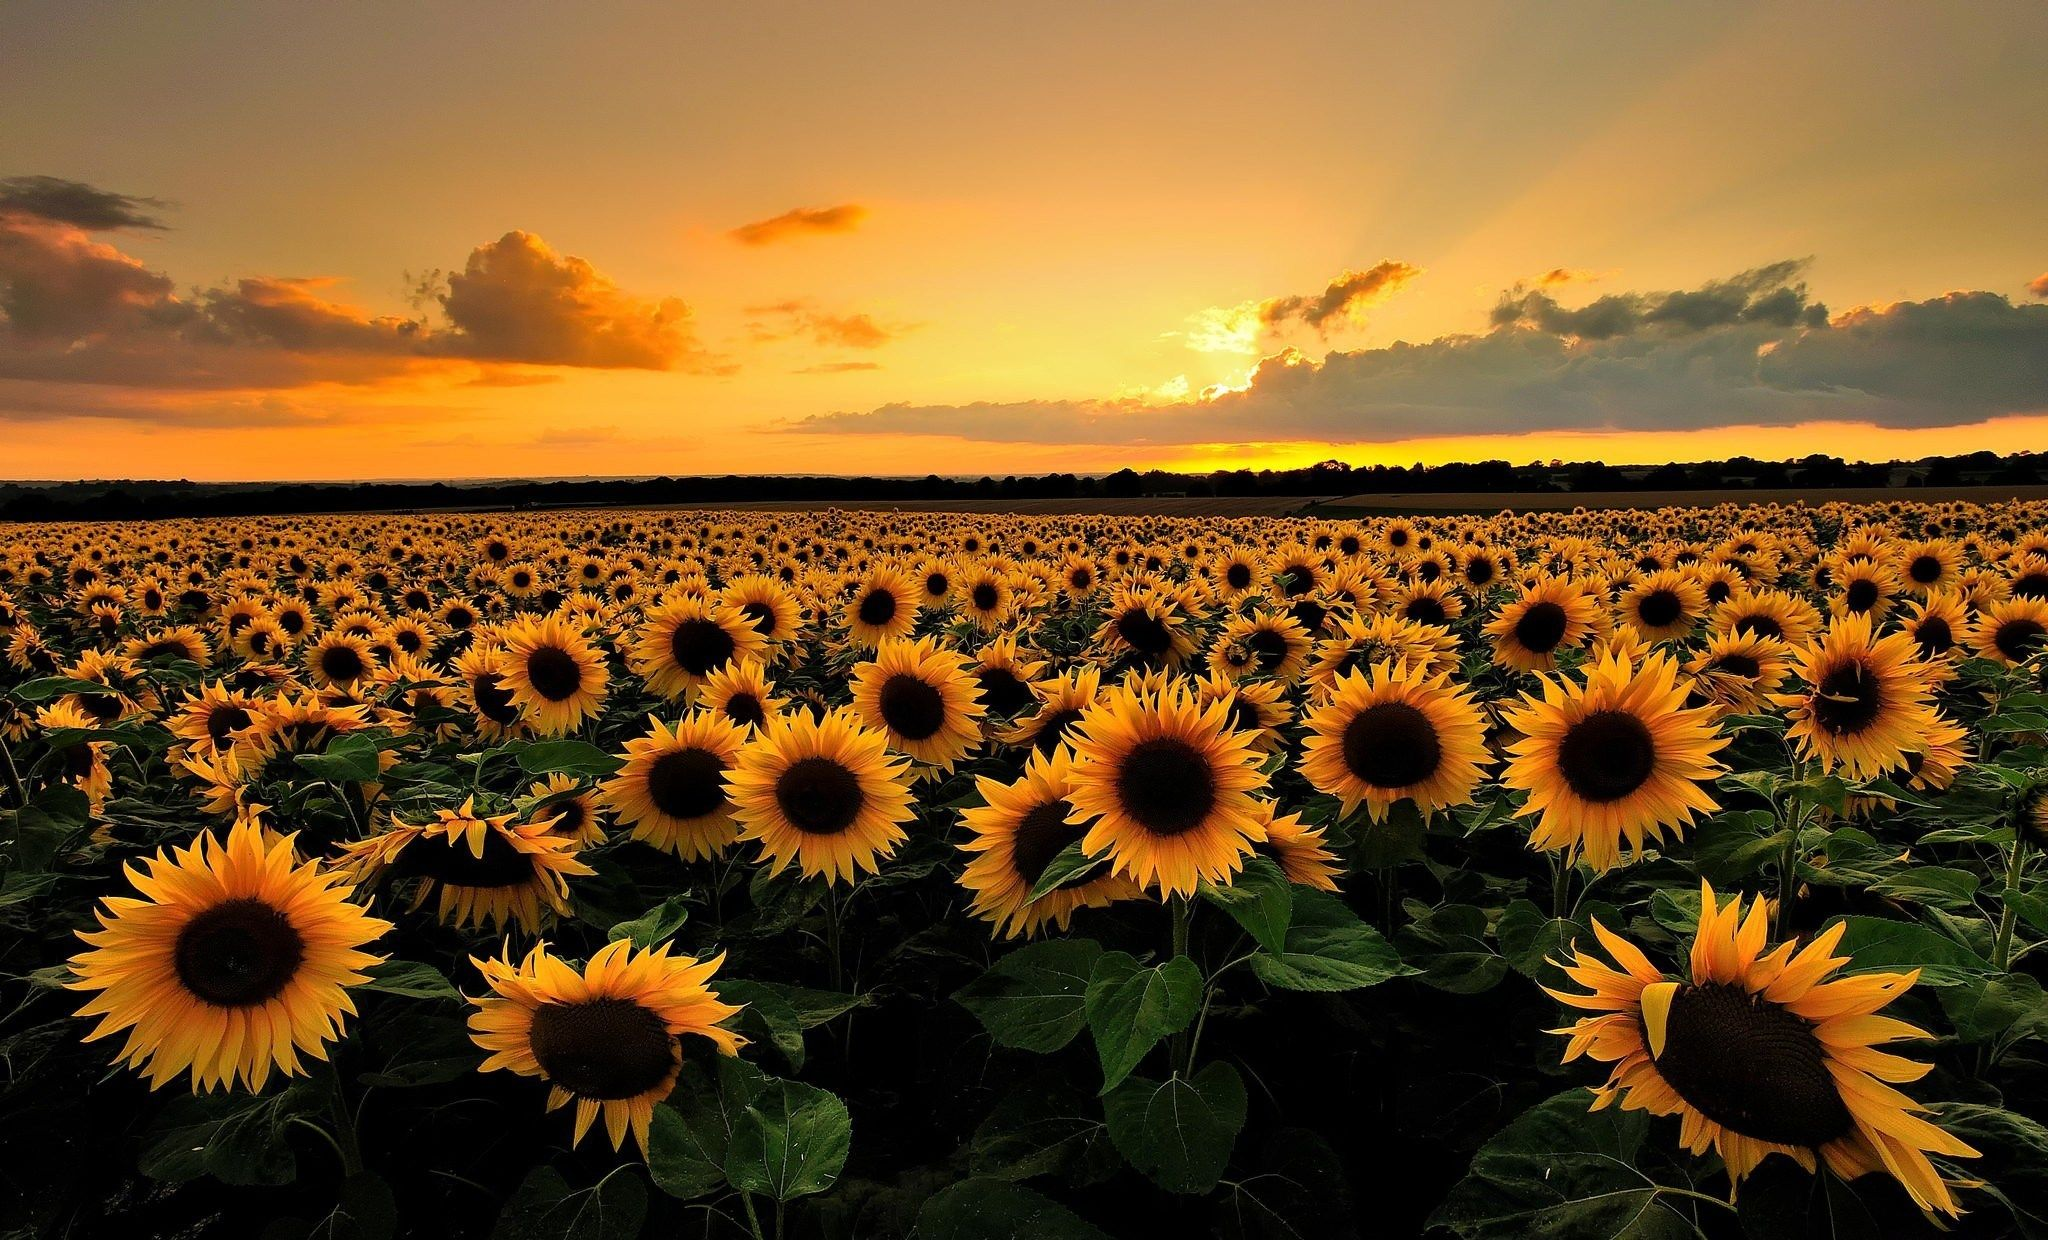 2048x1240 free desktop wallpaper downloads sunflower | backgrounds